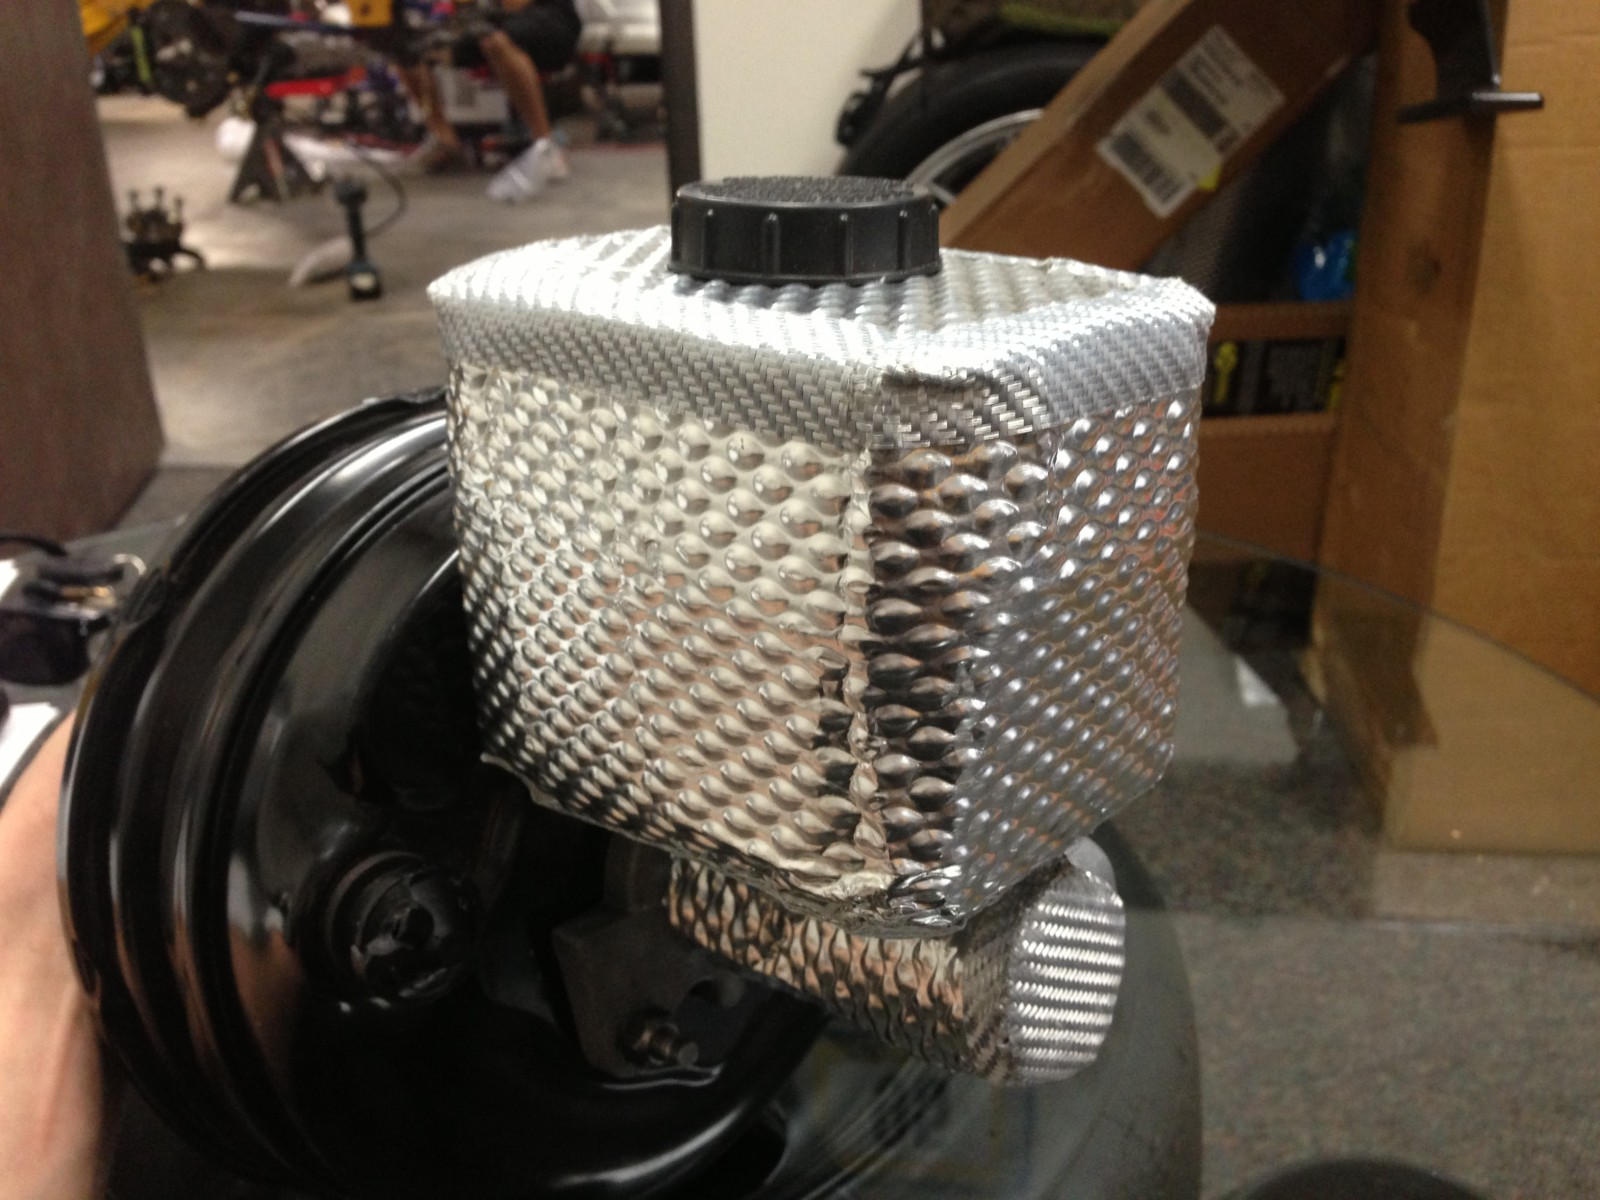 Exhaust Heat Wrap >> Heat Check: A Basic Guide to Exhaust Wrap, Thermal Barriers & Heat Protection - OnAllCylinders